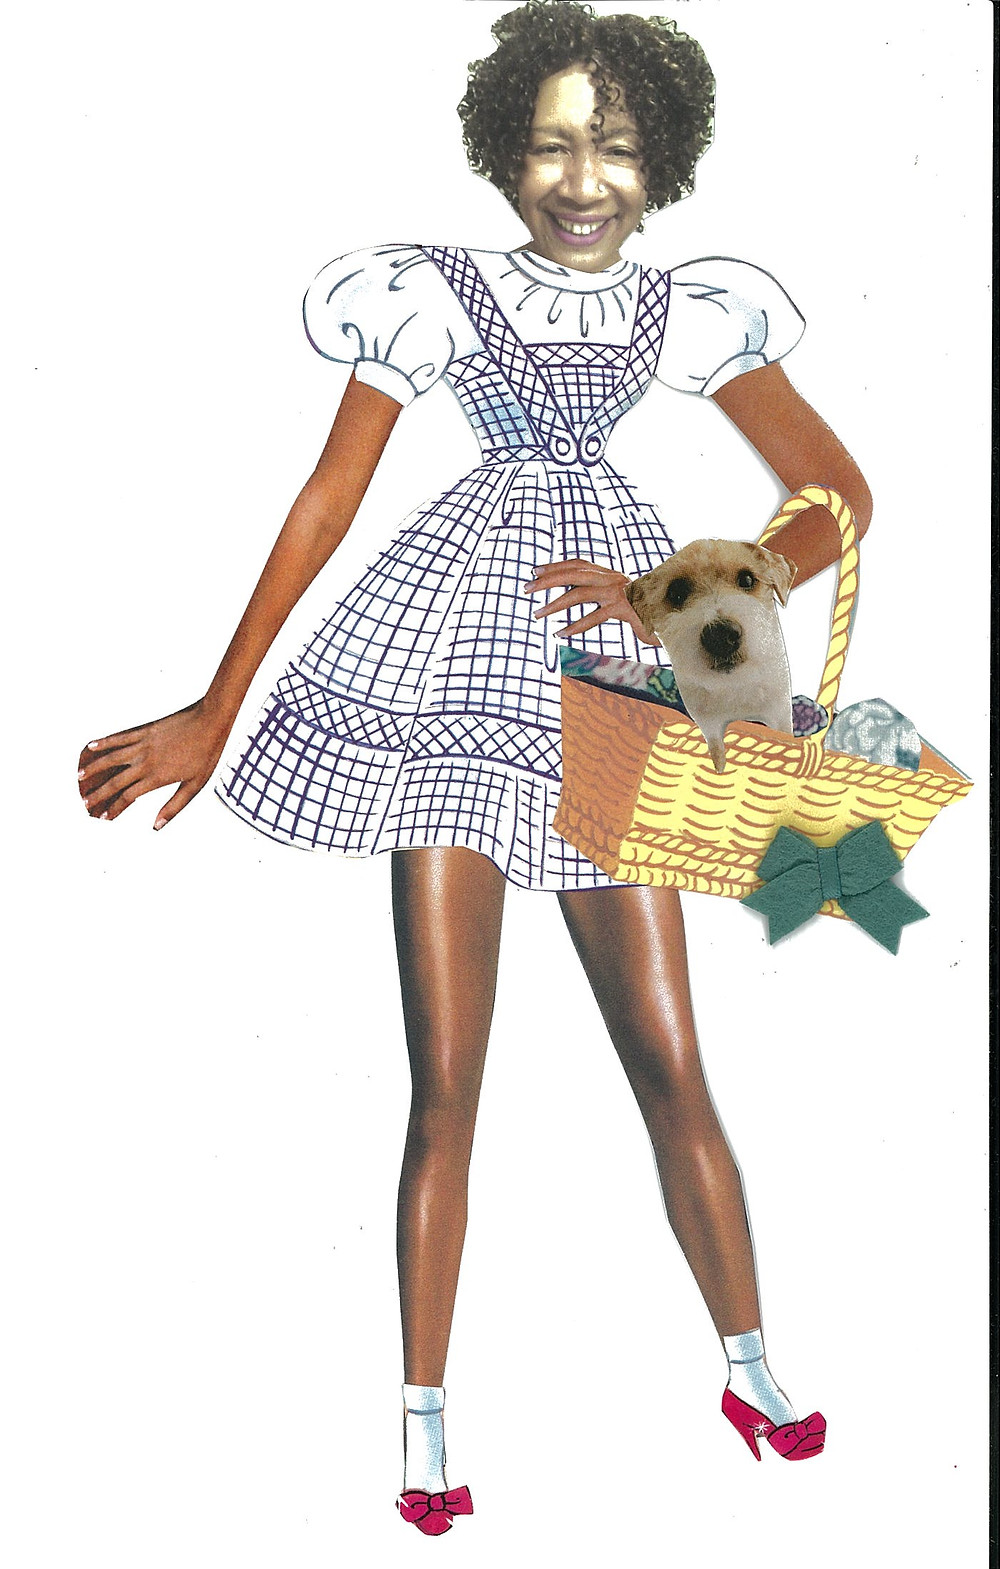 Gina Greenlee as Dorothy from the Wizard of Oz